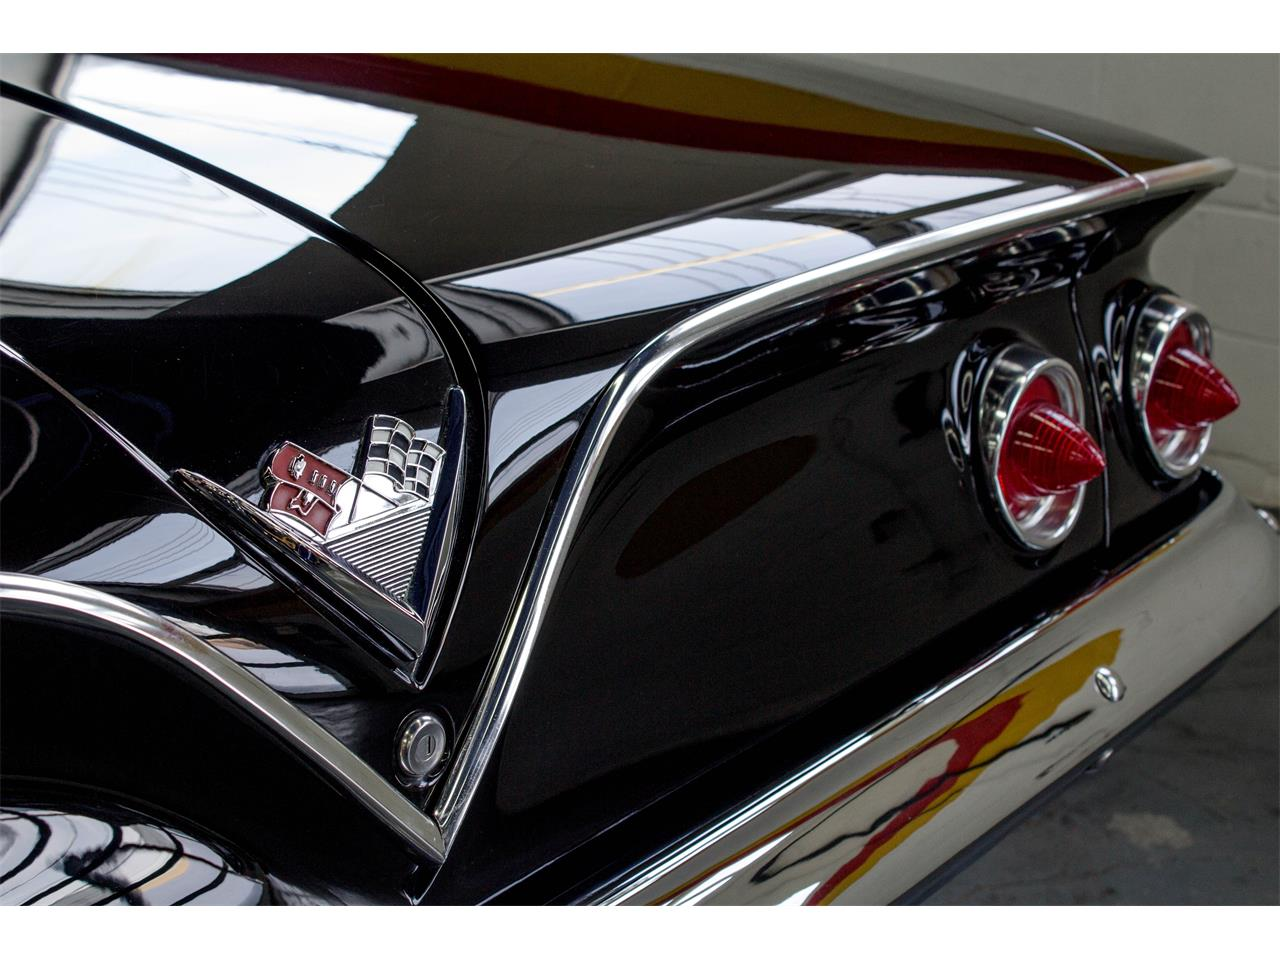 Large Picture of '61 Bel Air located in Montréal Quebec - $72,500.00 Offered by John Scotti Classic Cars - M35A